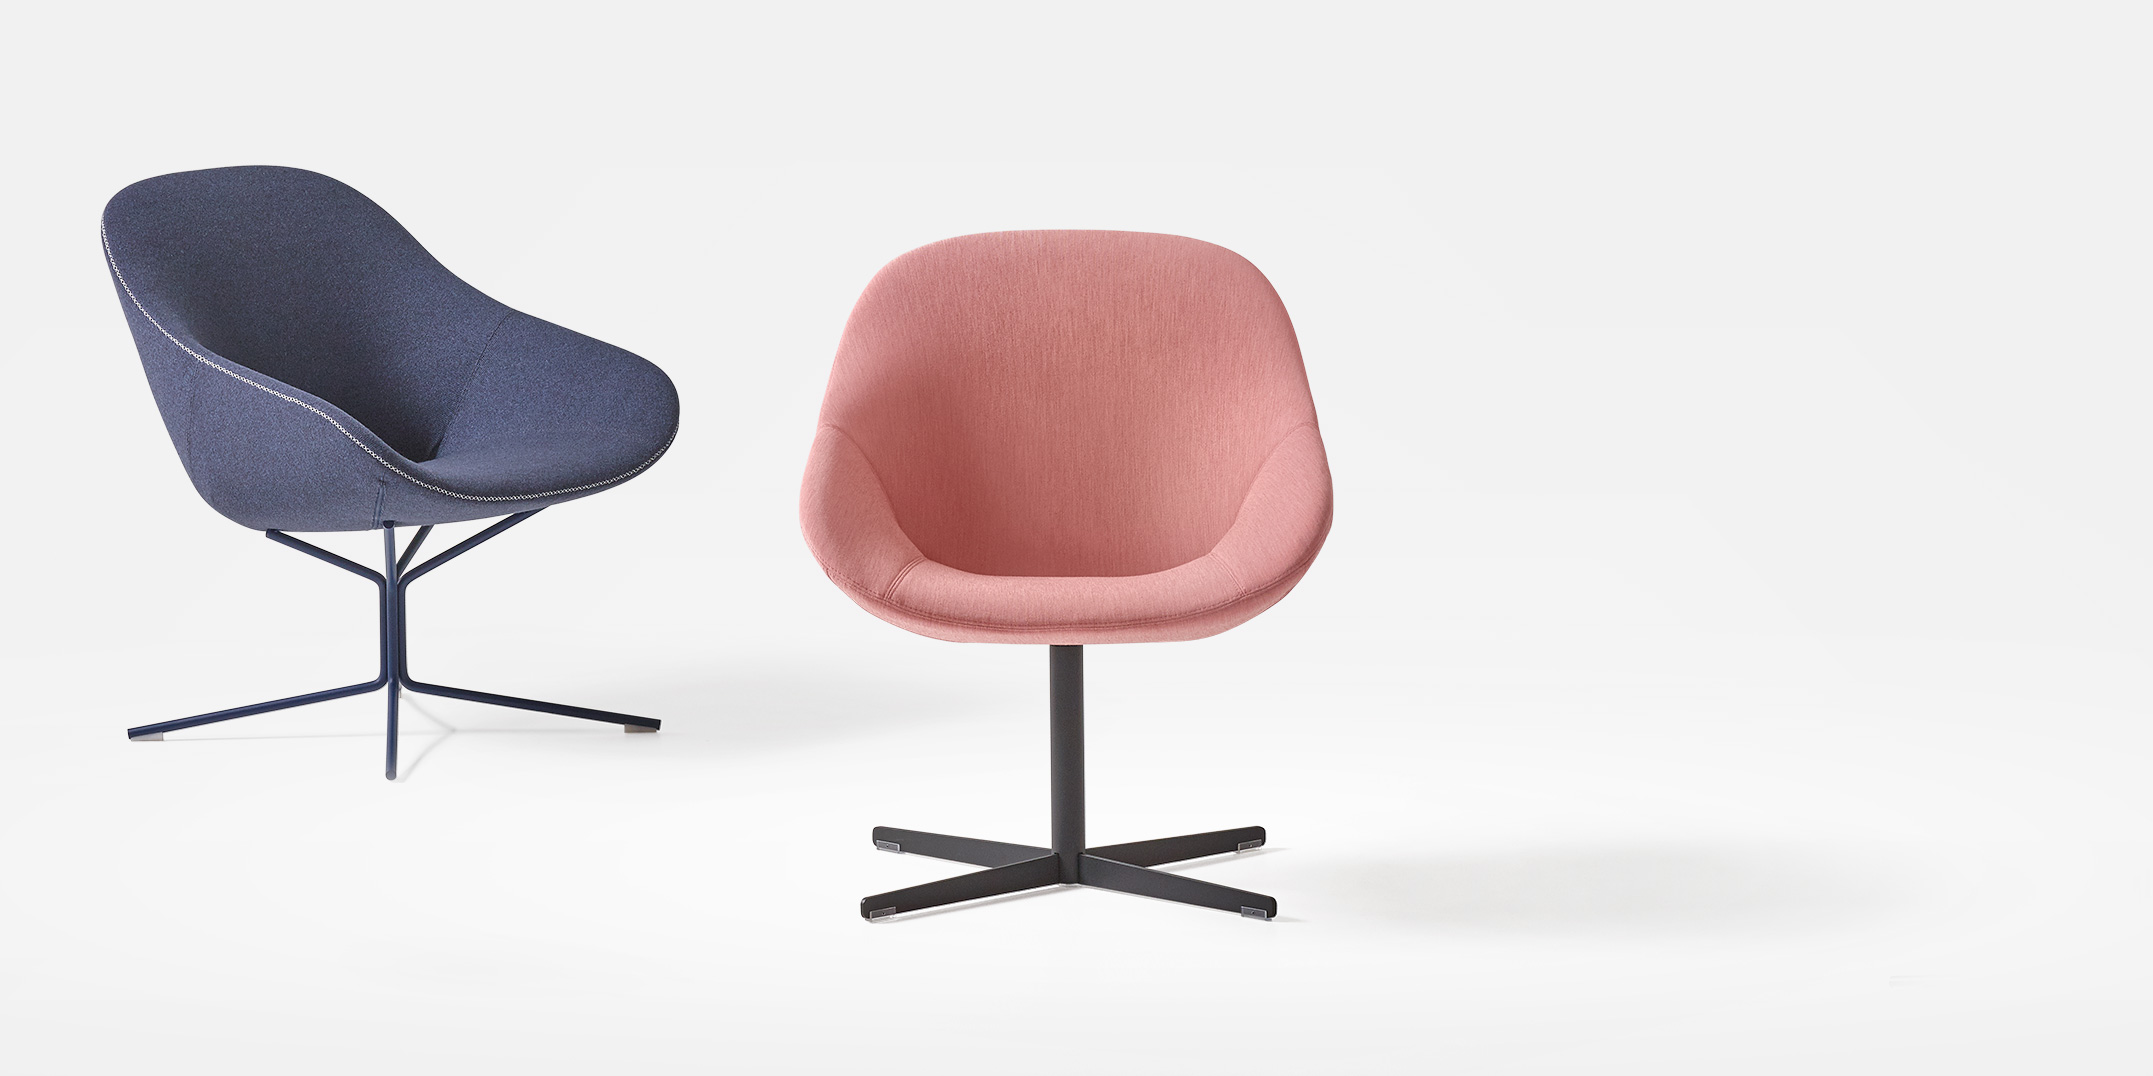 Beso Lounge Chair by Khodi Feiz -  starting price is $1,445 List with   non-swiveling, star base